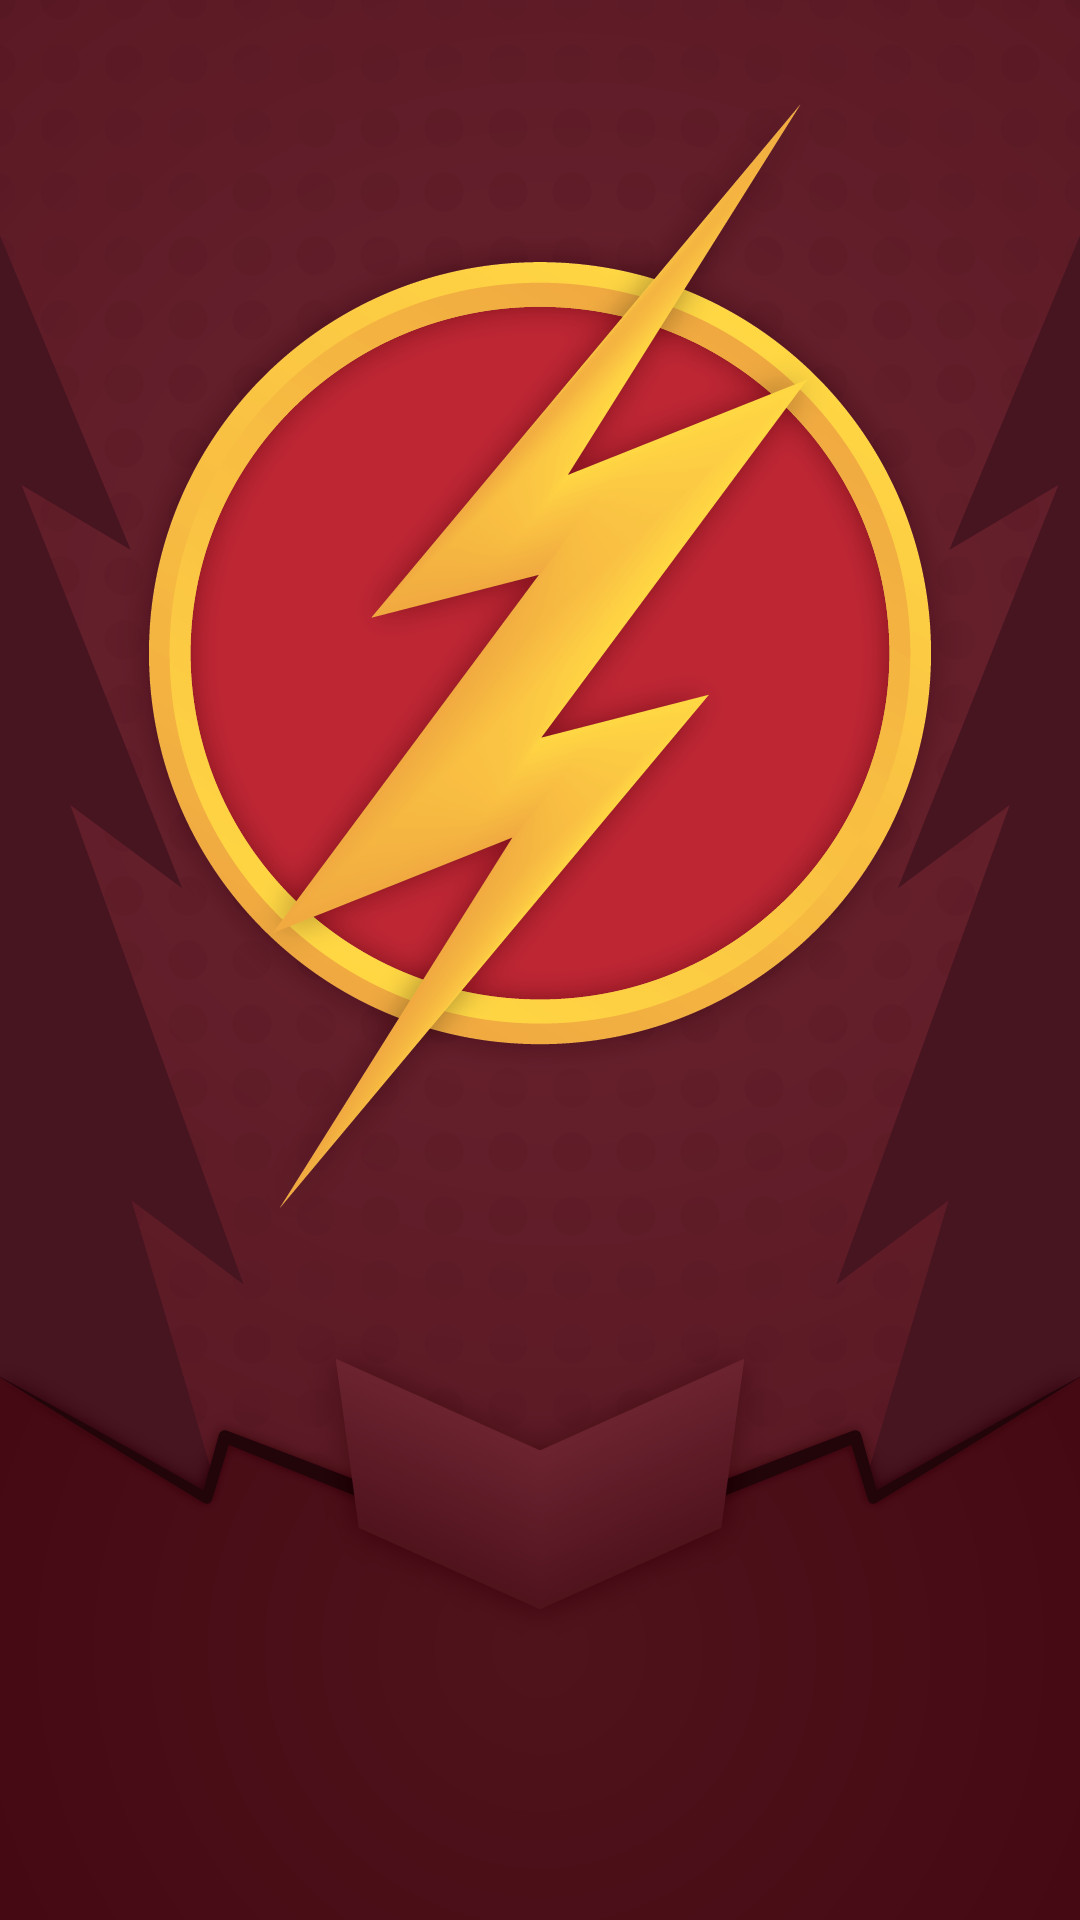 Cw Flash Iphone Wallpaper 79 Images